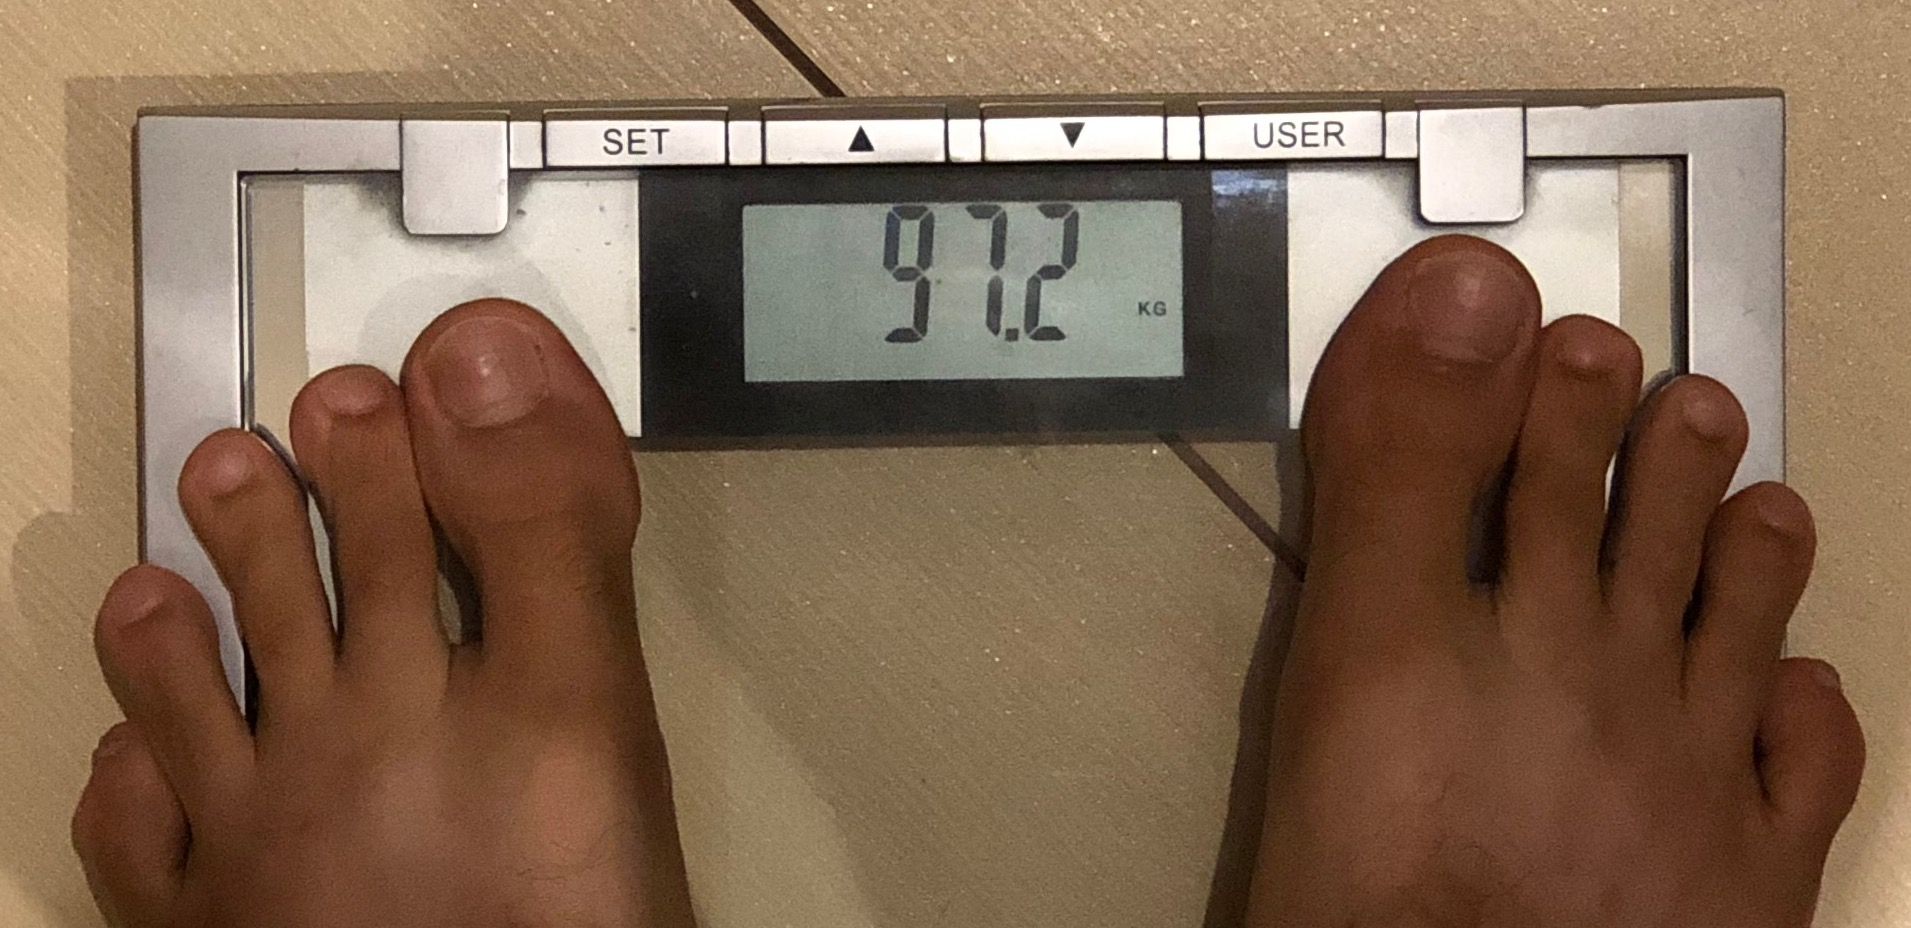 Day 14 morning weight